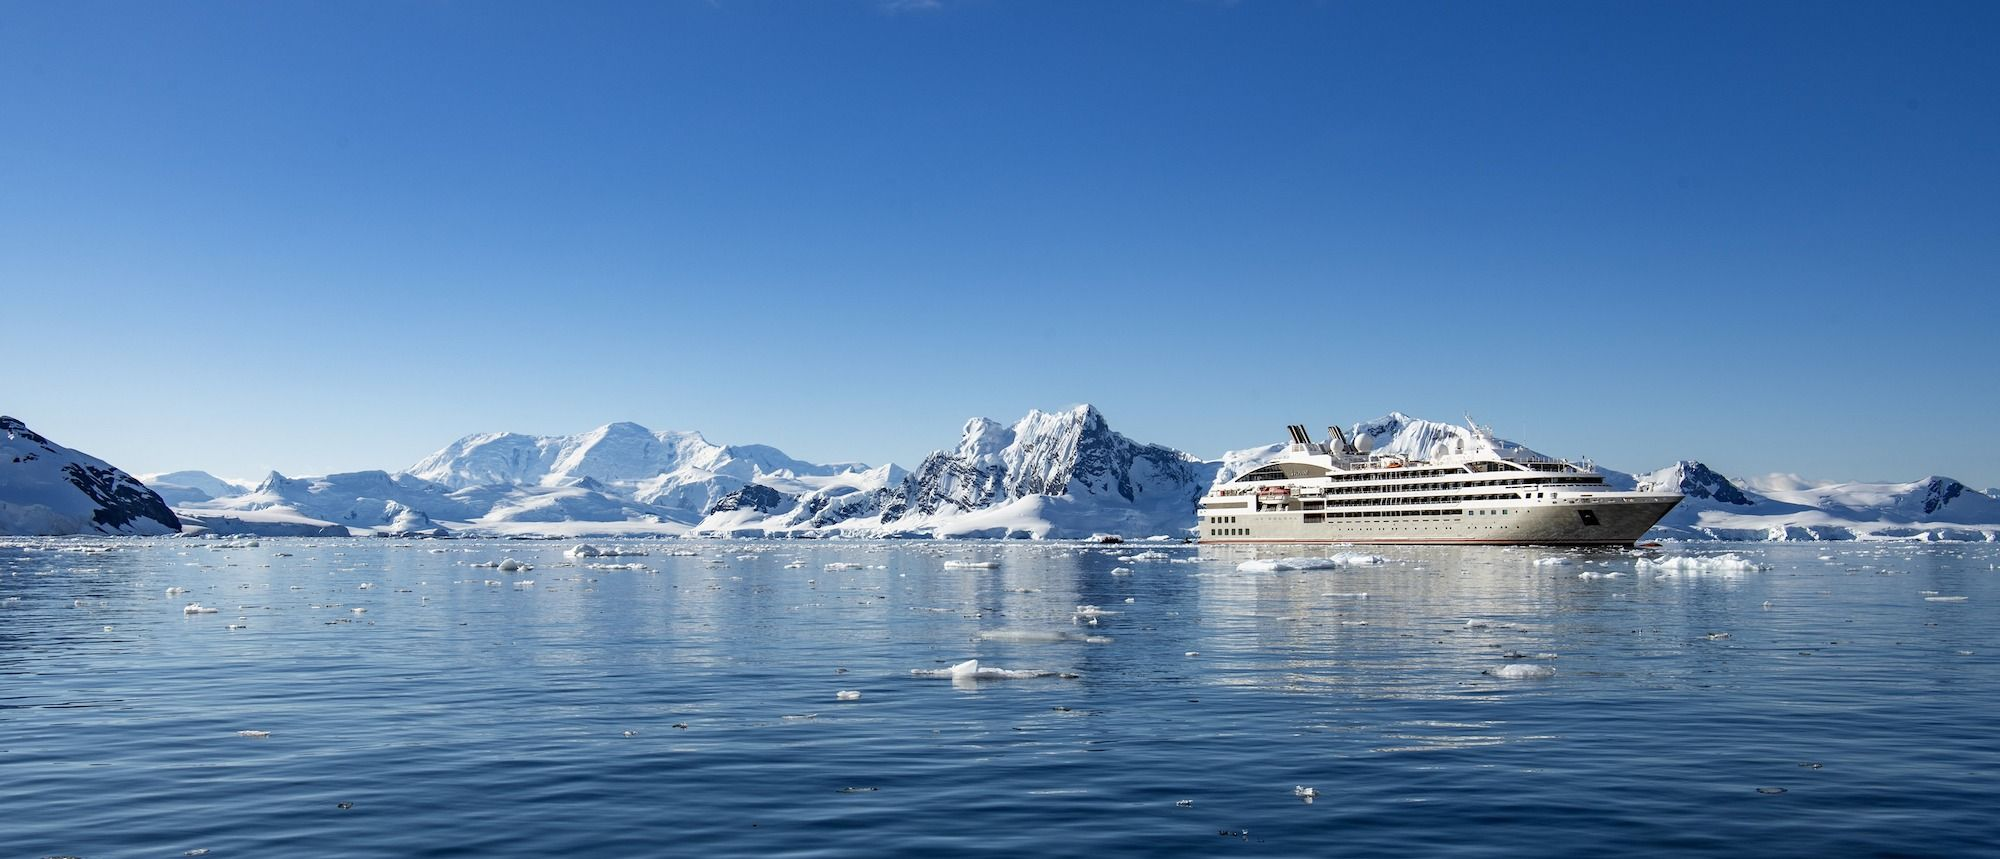 Travel To Antarctica On A Disney Cruise This December 2021